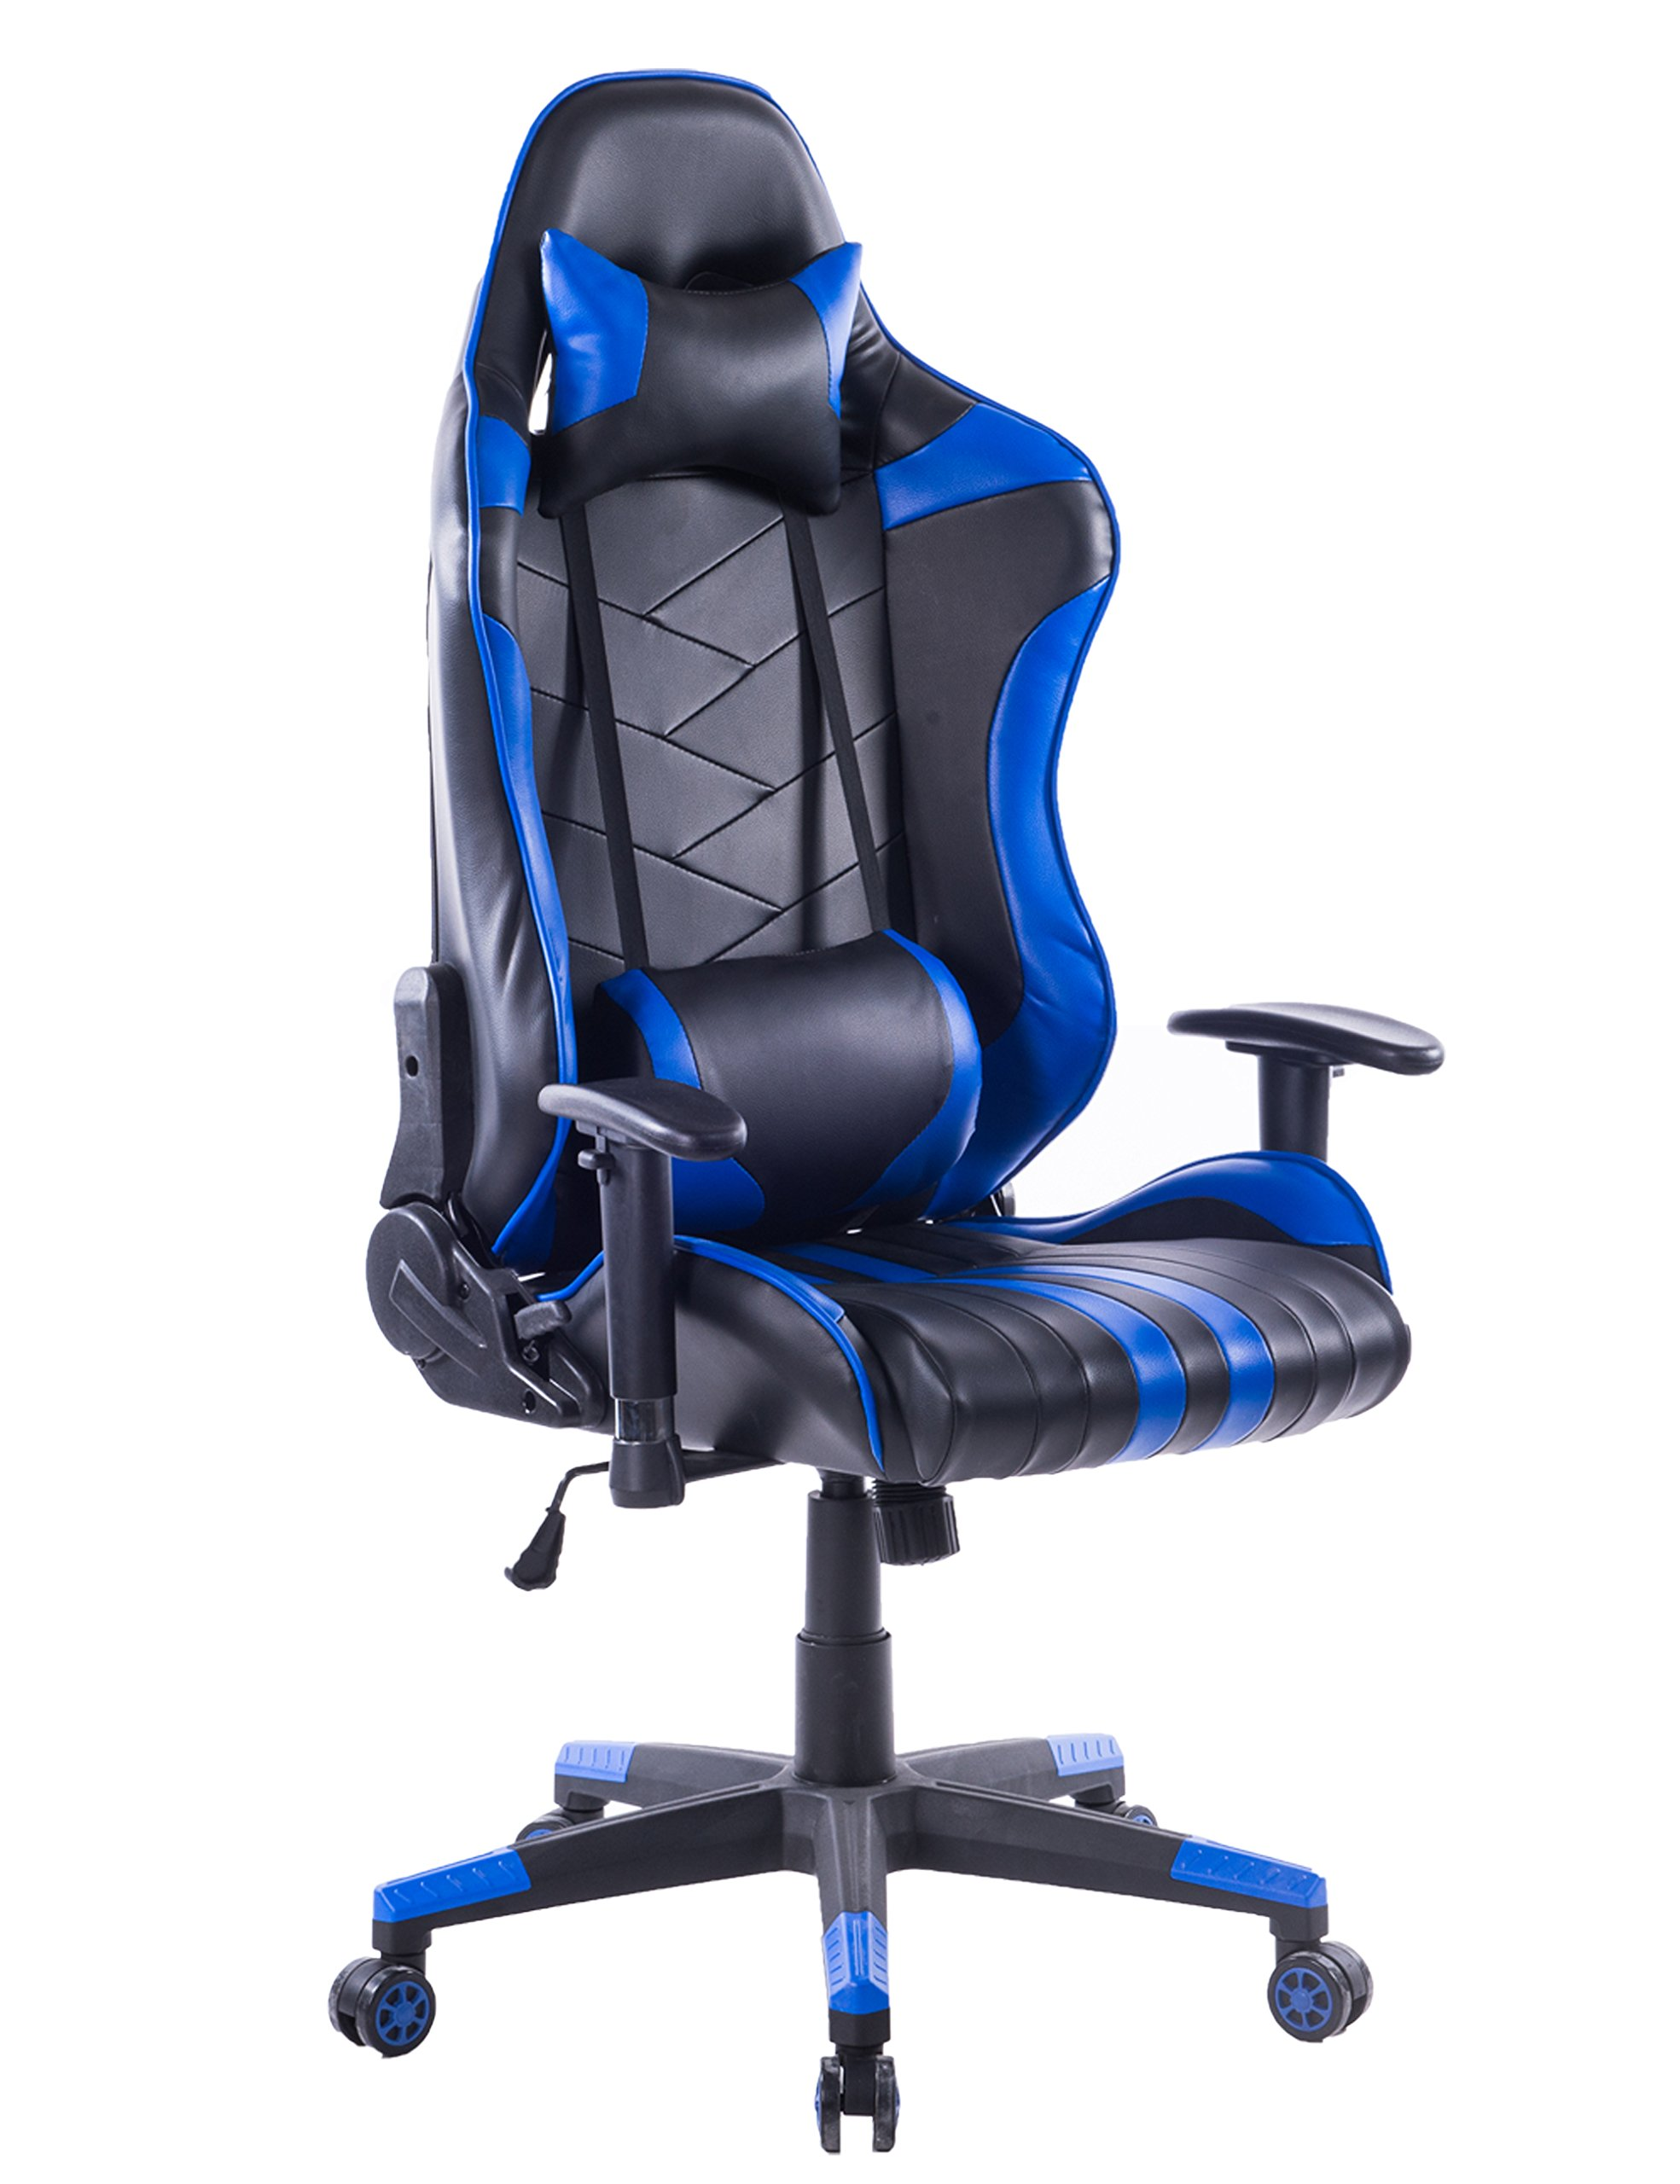 Killbee Large Size PVC Ergonomic Reclining Racing Chair Executive Office Chair with Headrest and Lumbar Support (Blue)